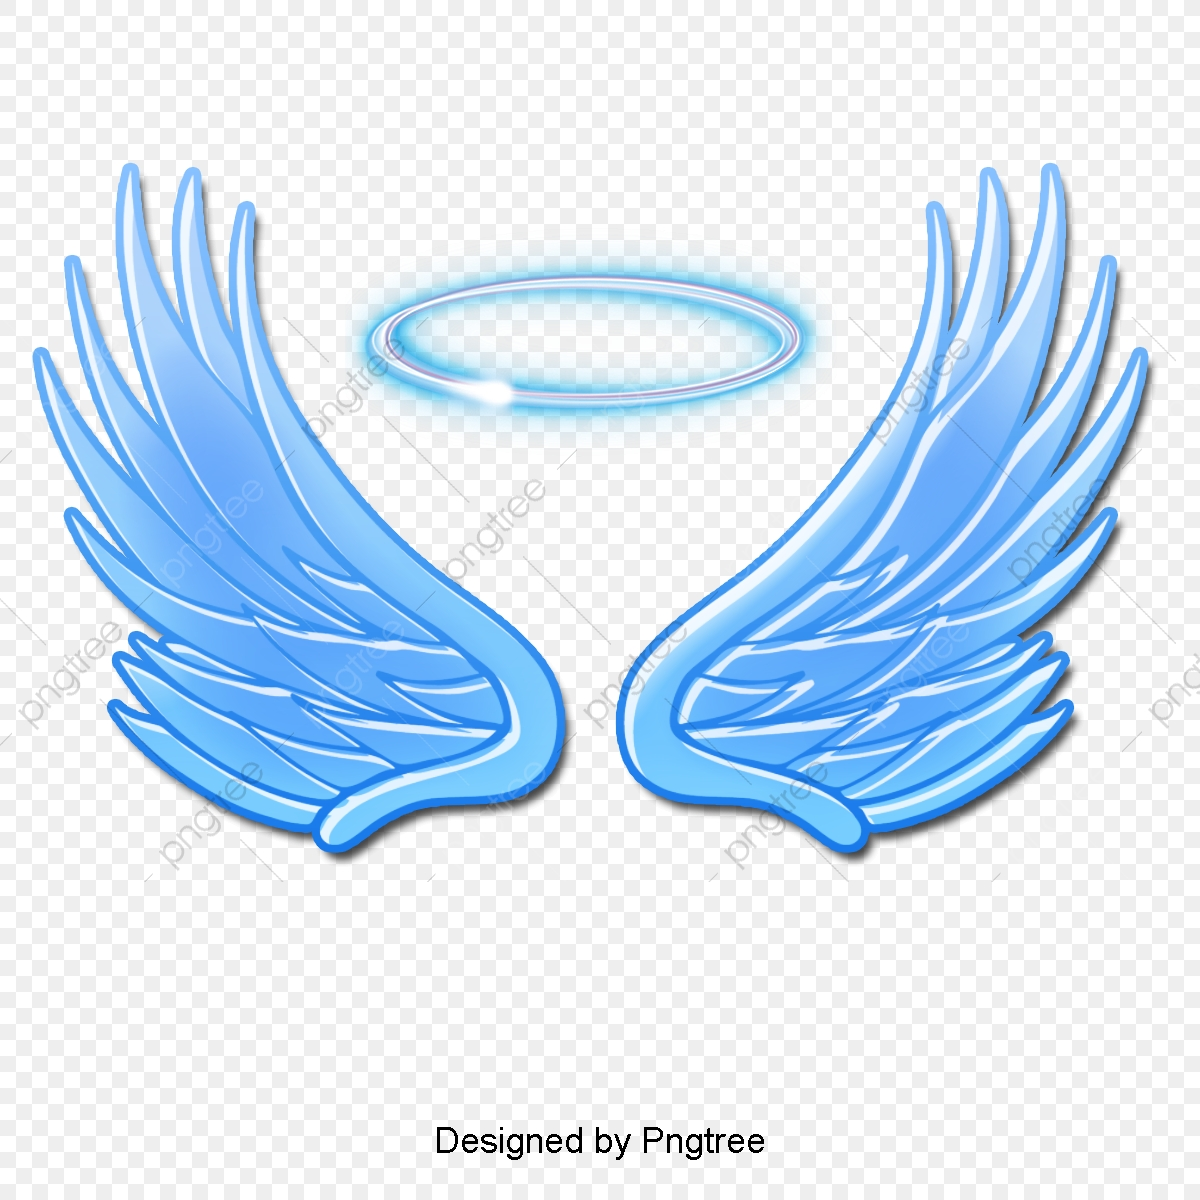 Wing clipart abstract. Gradient cartoon angel elements